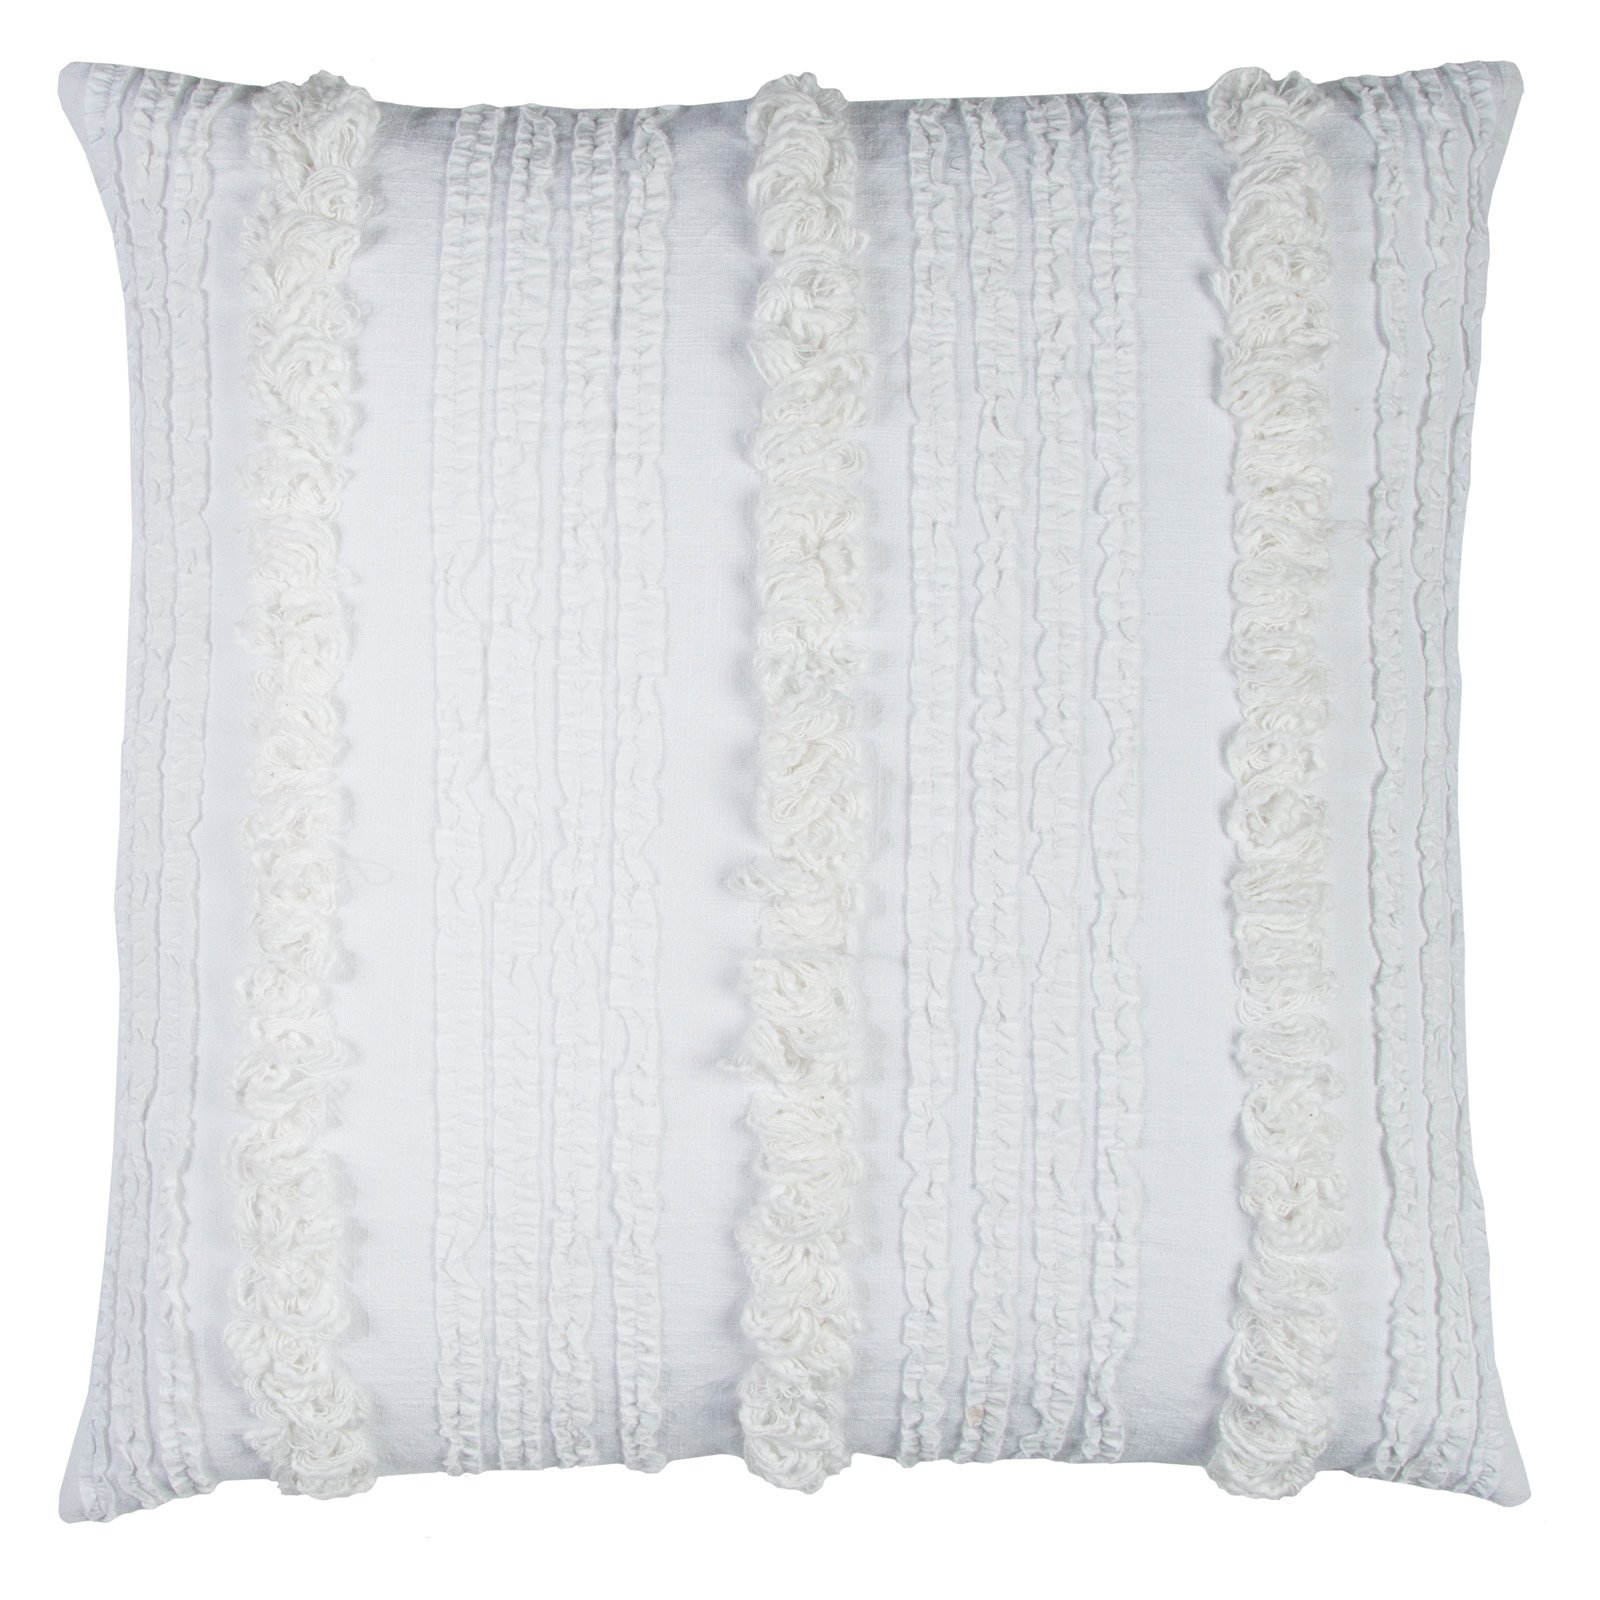 Rizzy Home Vertical deconstructed Stripe20X20Cottondecorative filled pillow